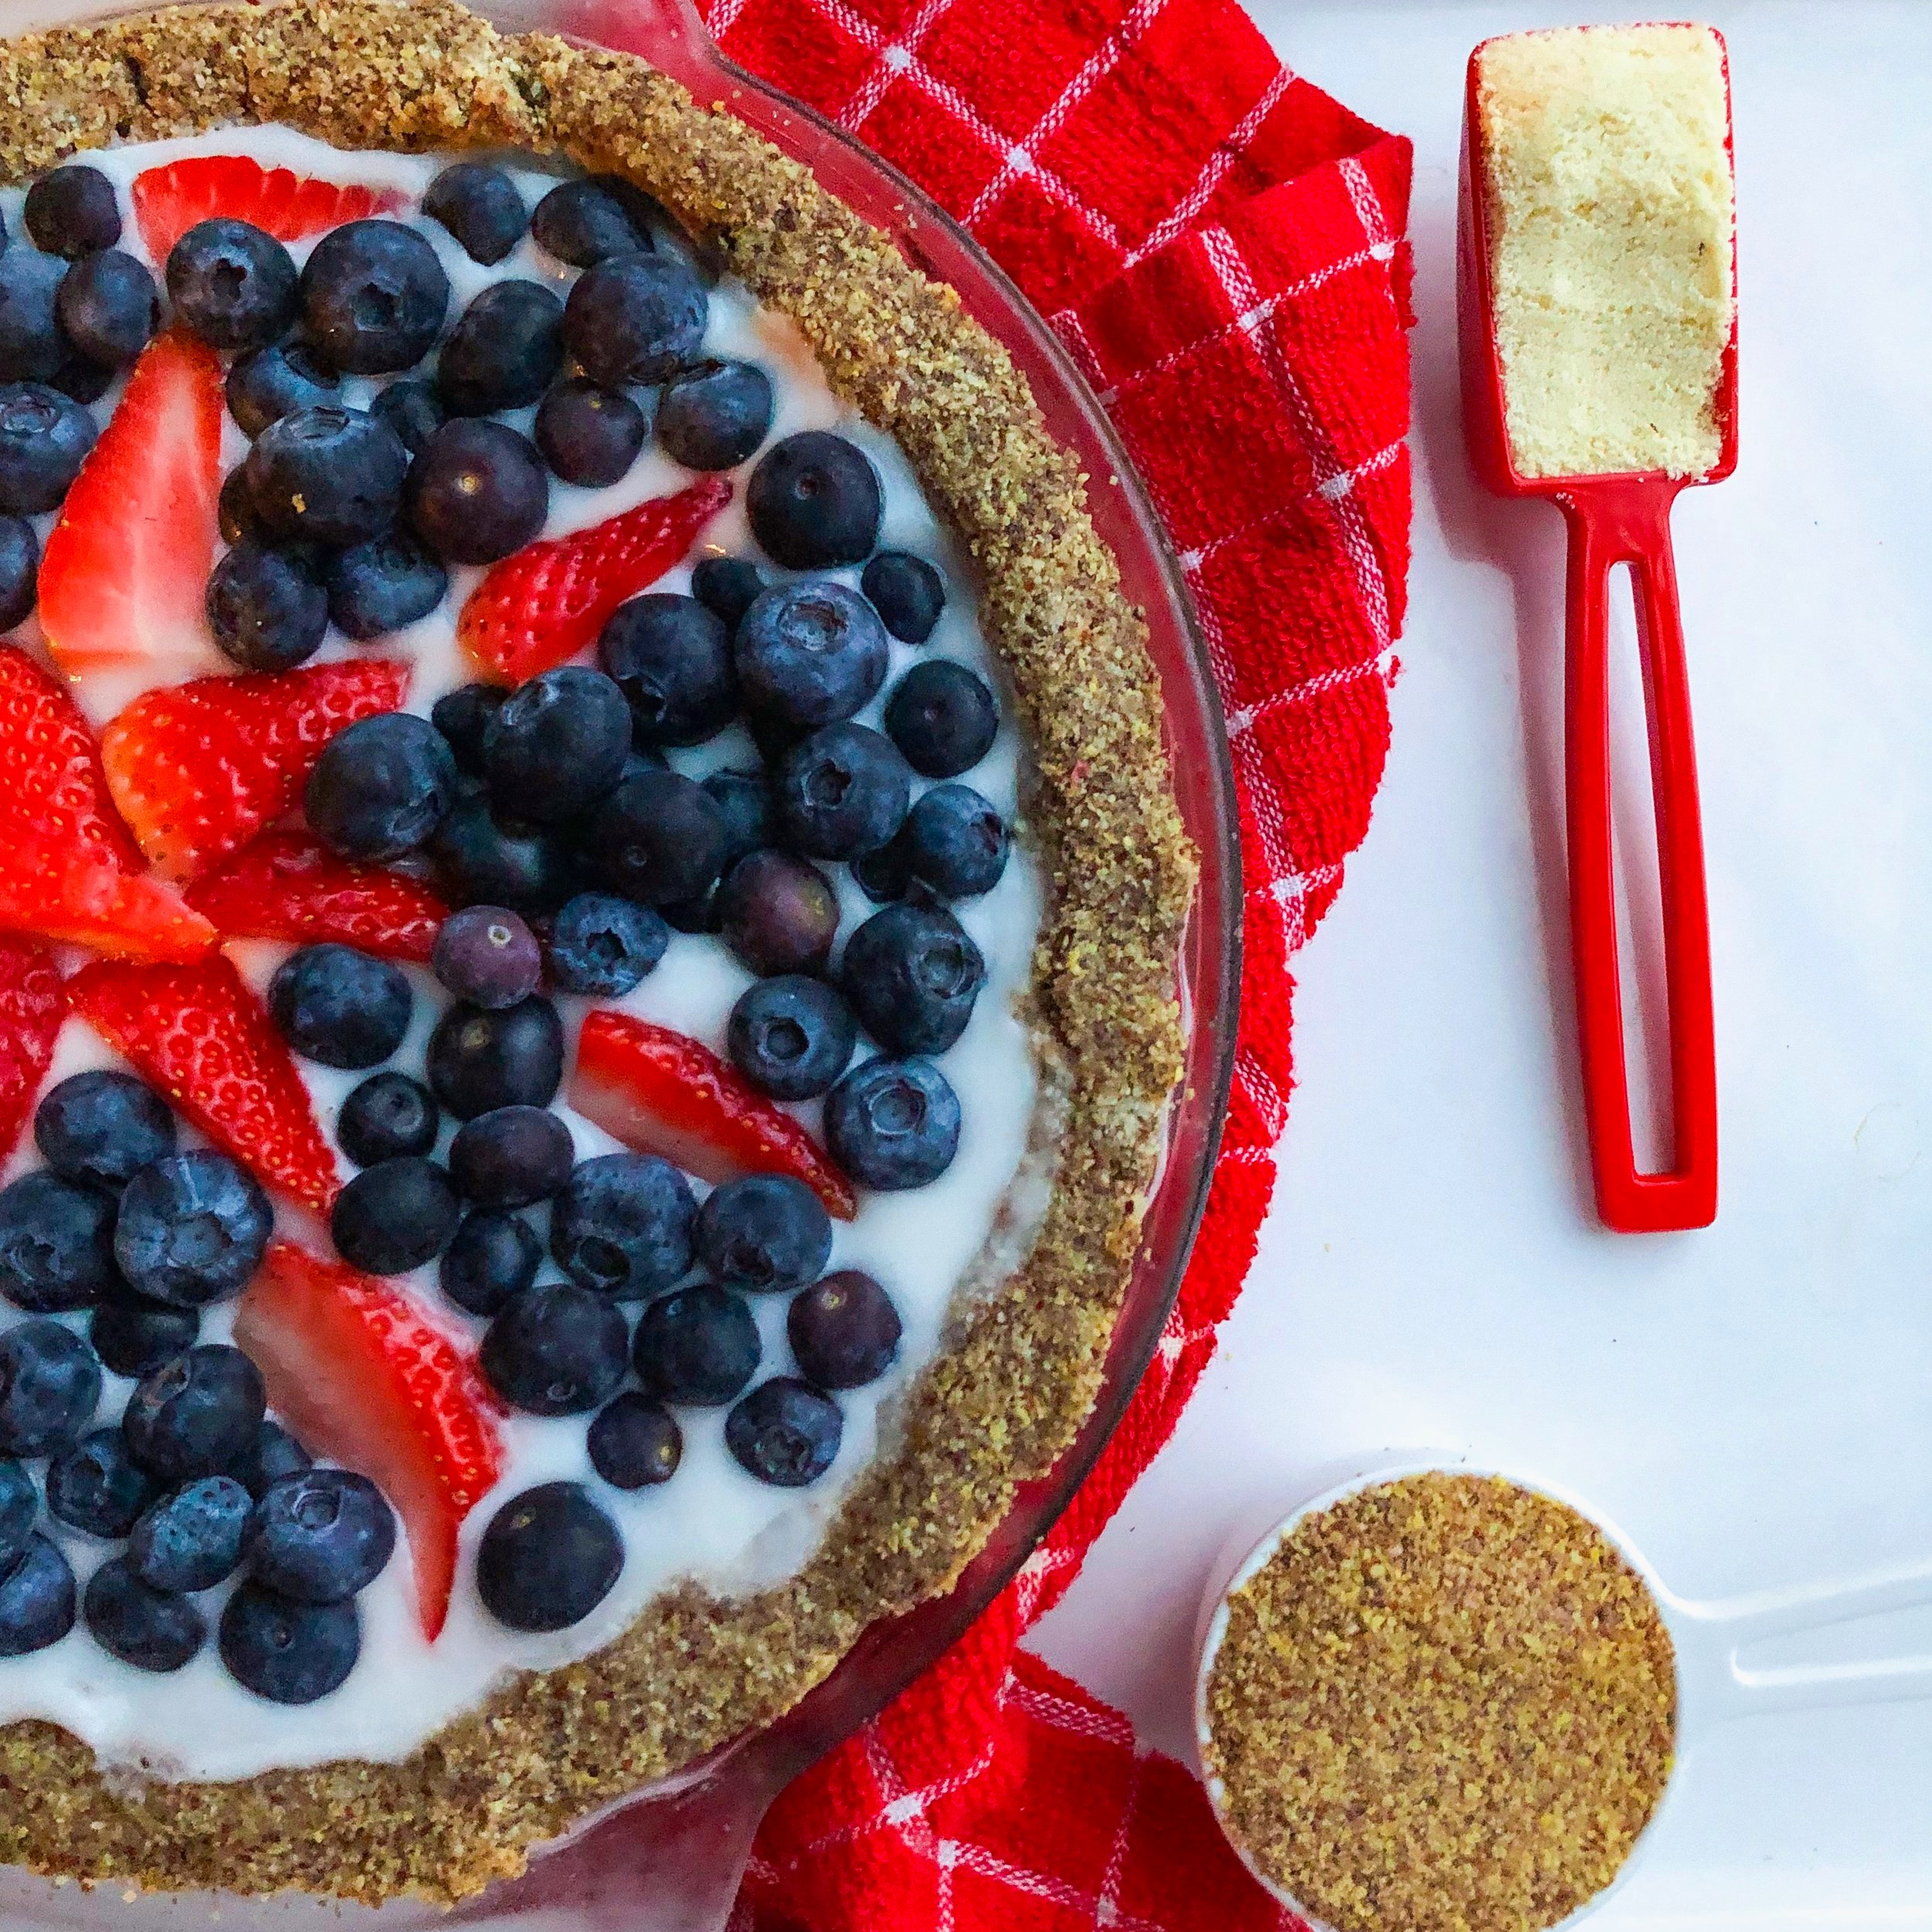 Grain-Free Pie Crust - Grain-Free, Paleo, Vegan (Optional), Gluten-Free